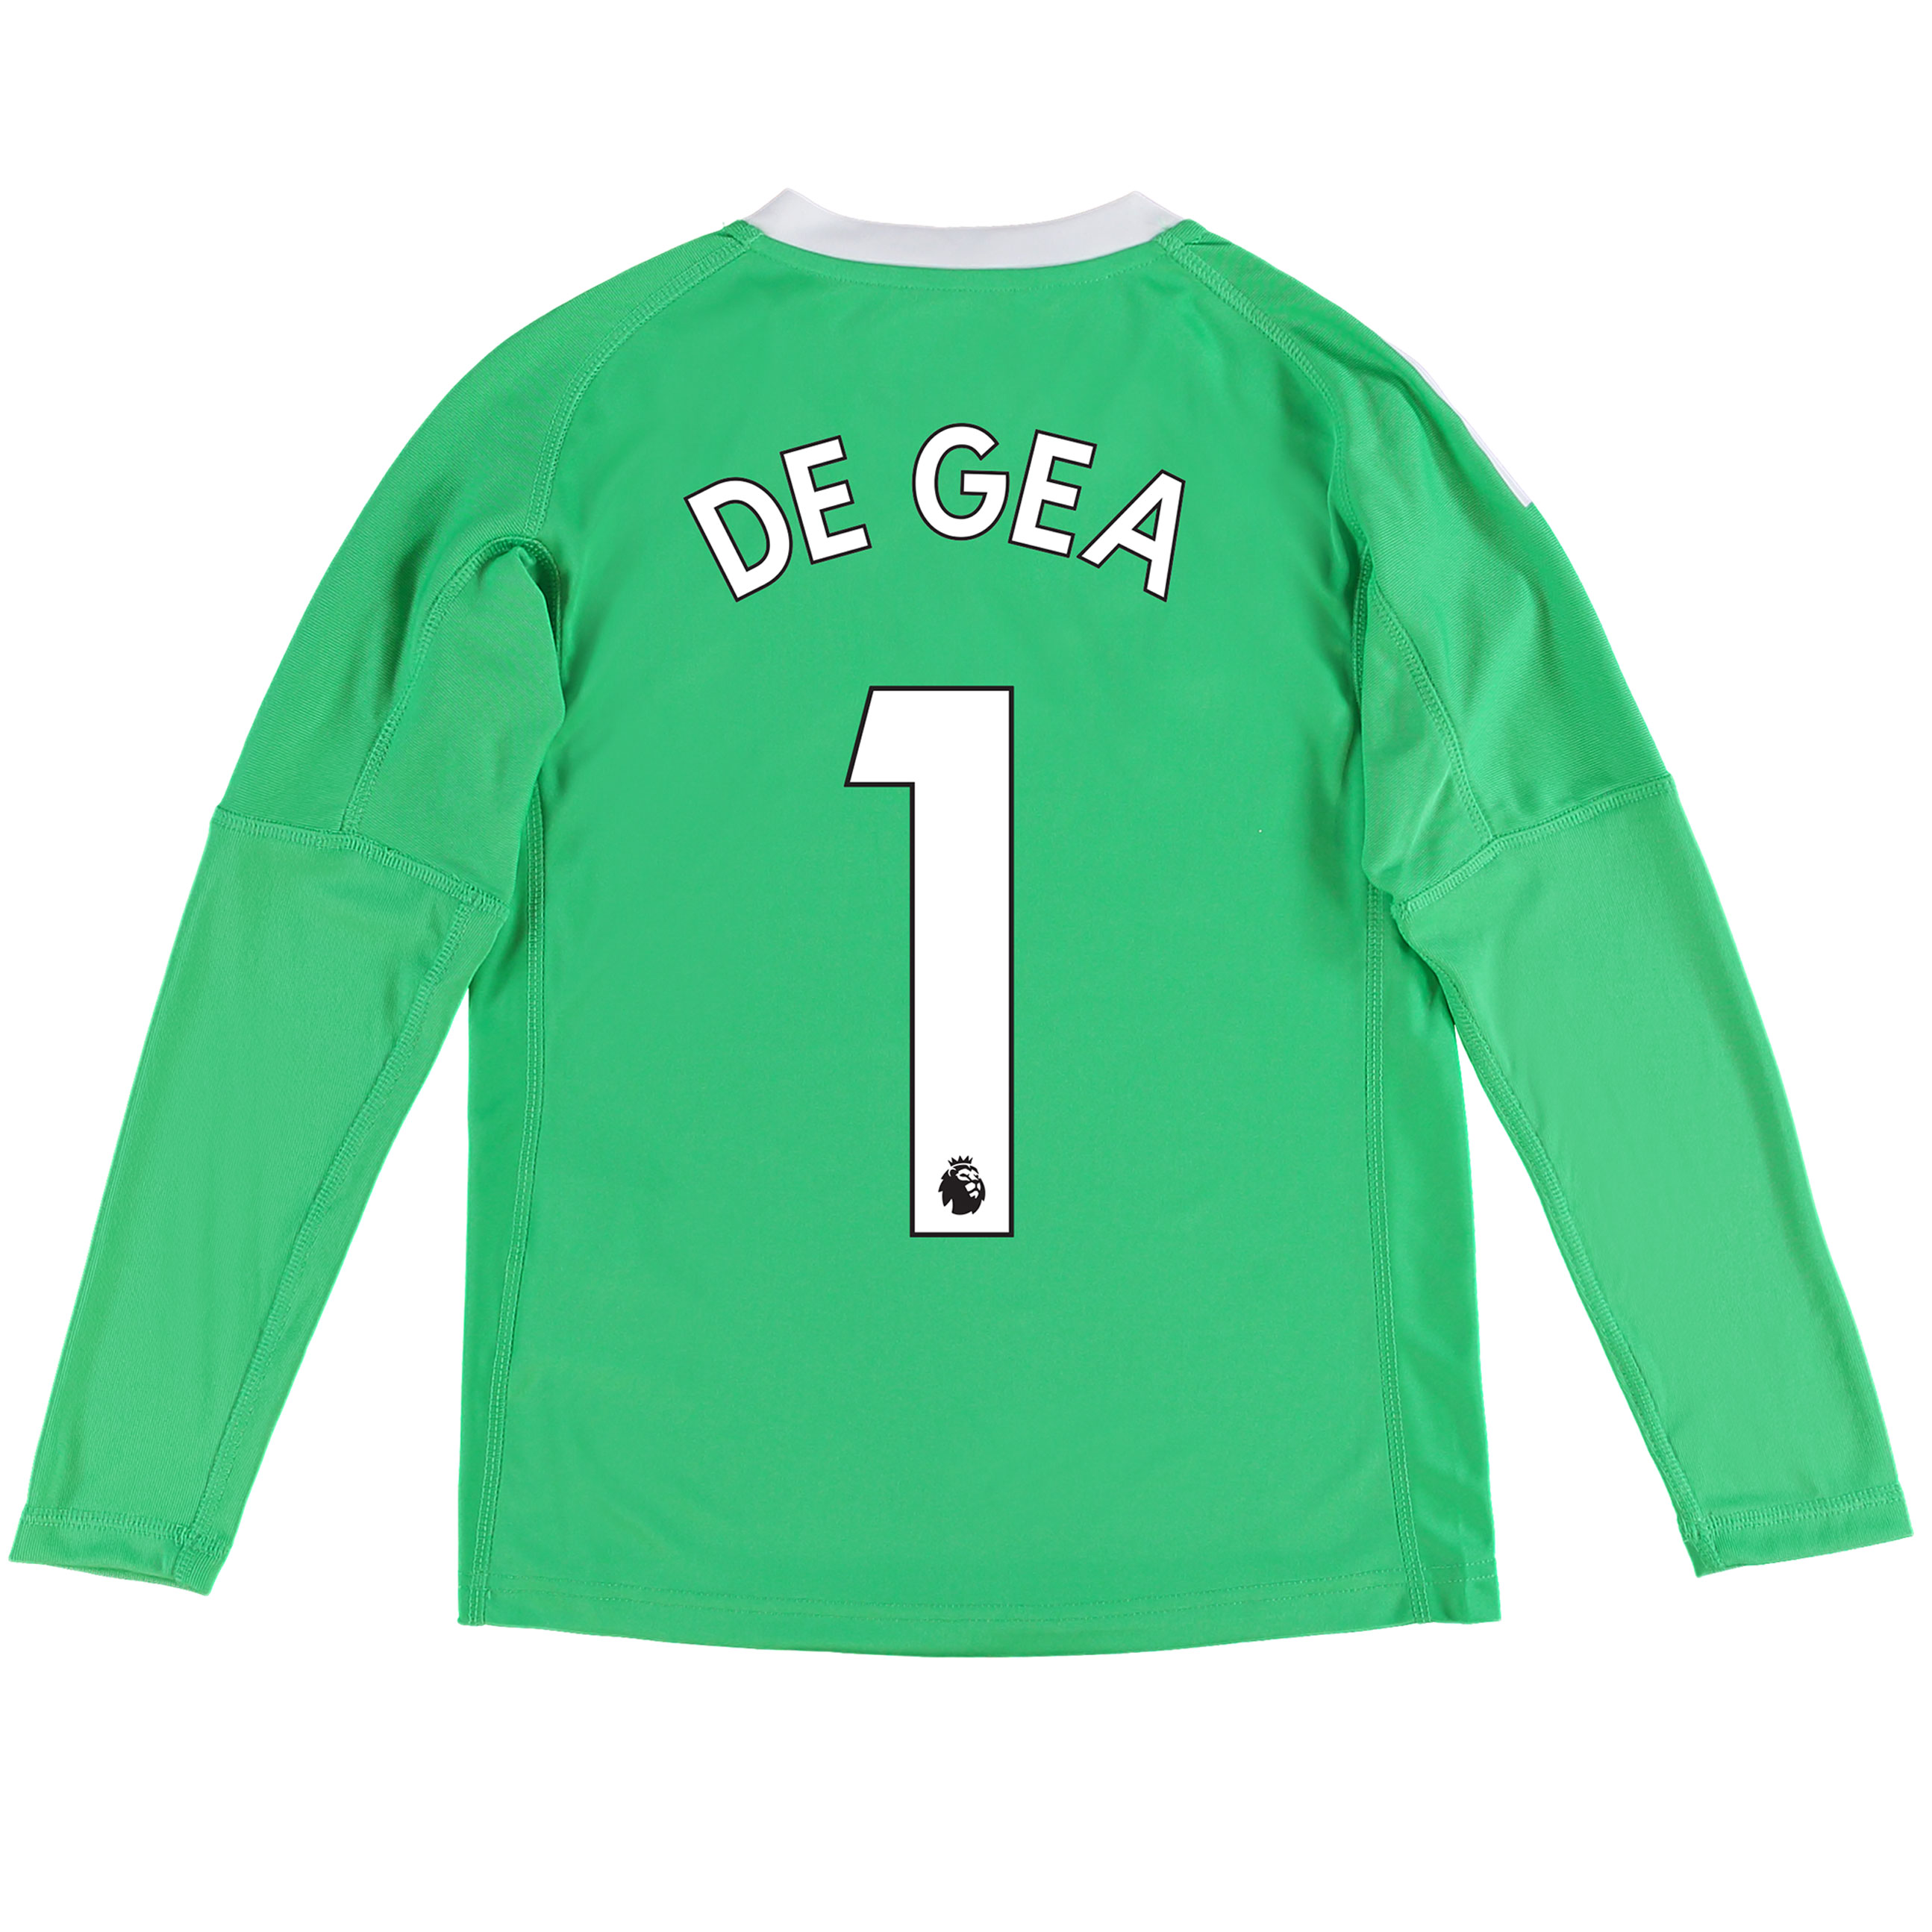 Manchester United Away Goalkeeper Shirt 2017-18 - Kids with De Gea 1 p